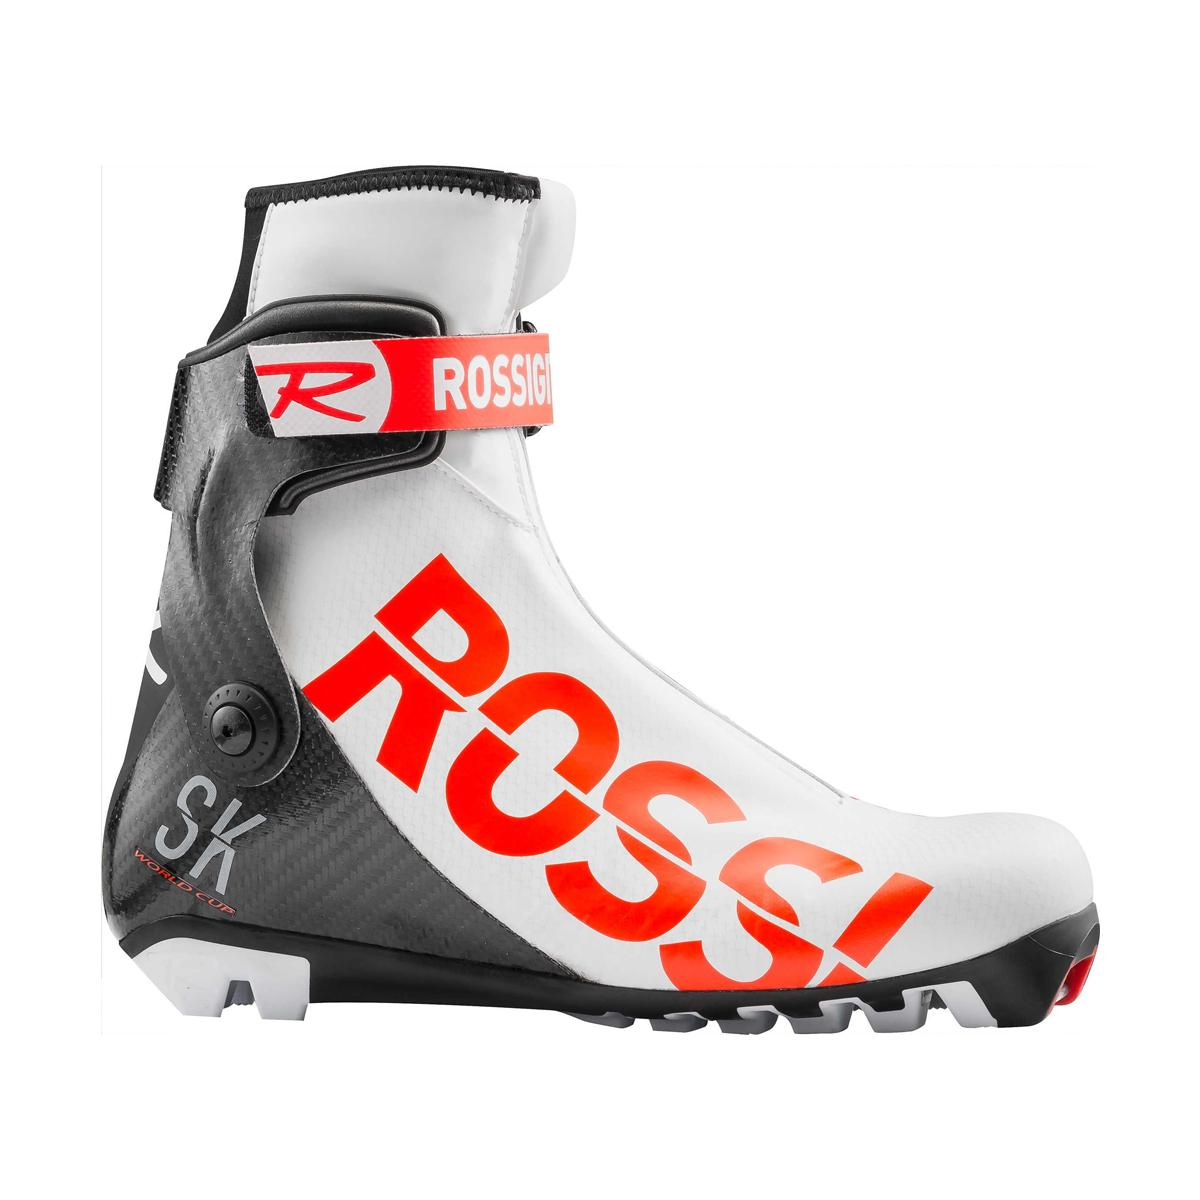 Rossignol Women's X-Ium WC Skate Boot in White and Black